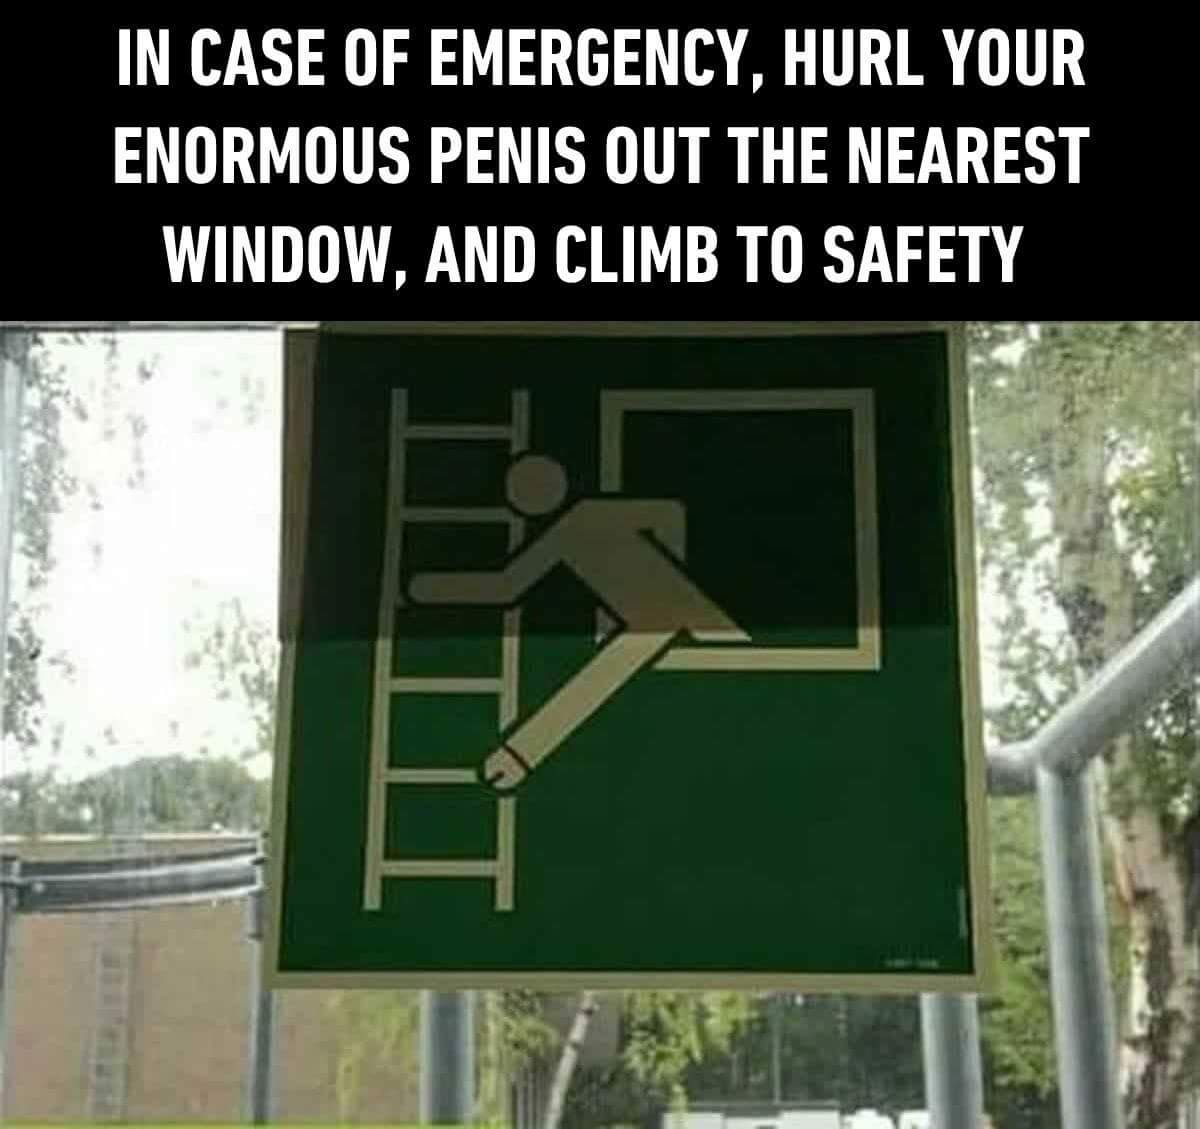 Safety priorities